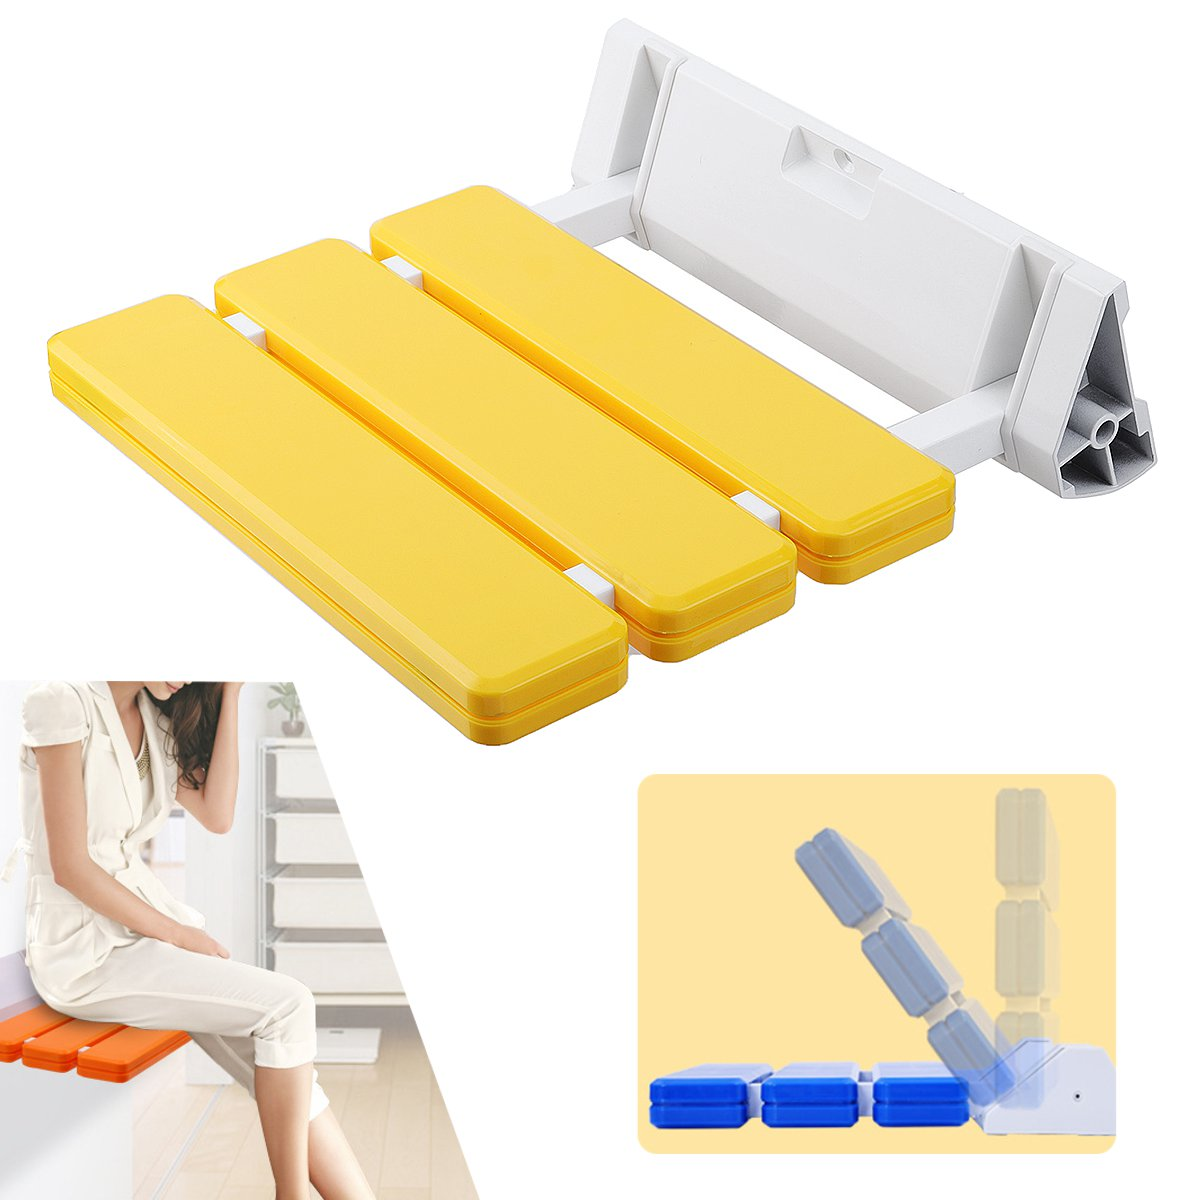 Foldaway Bathroom Wall Mounted Shower Seat Chair Aluminium Alloy Elderly Disabled Mobility Aid Solid Spa Stool Fixture Yellow